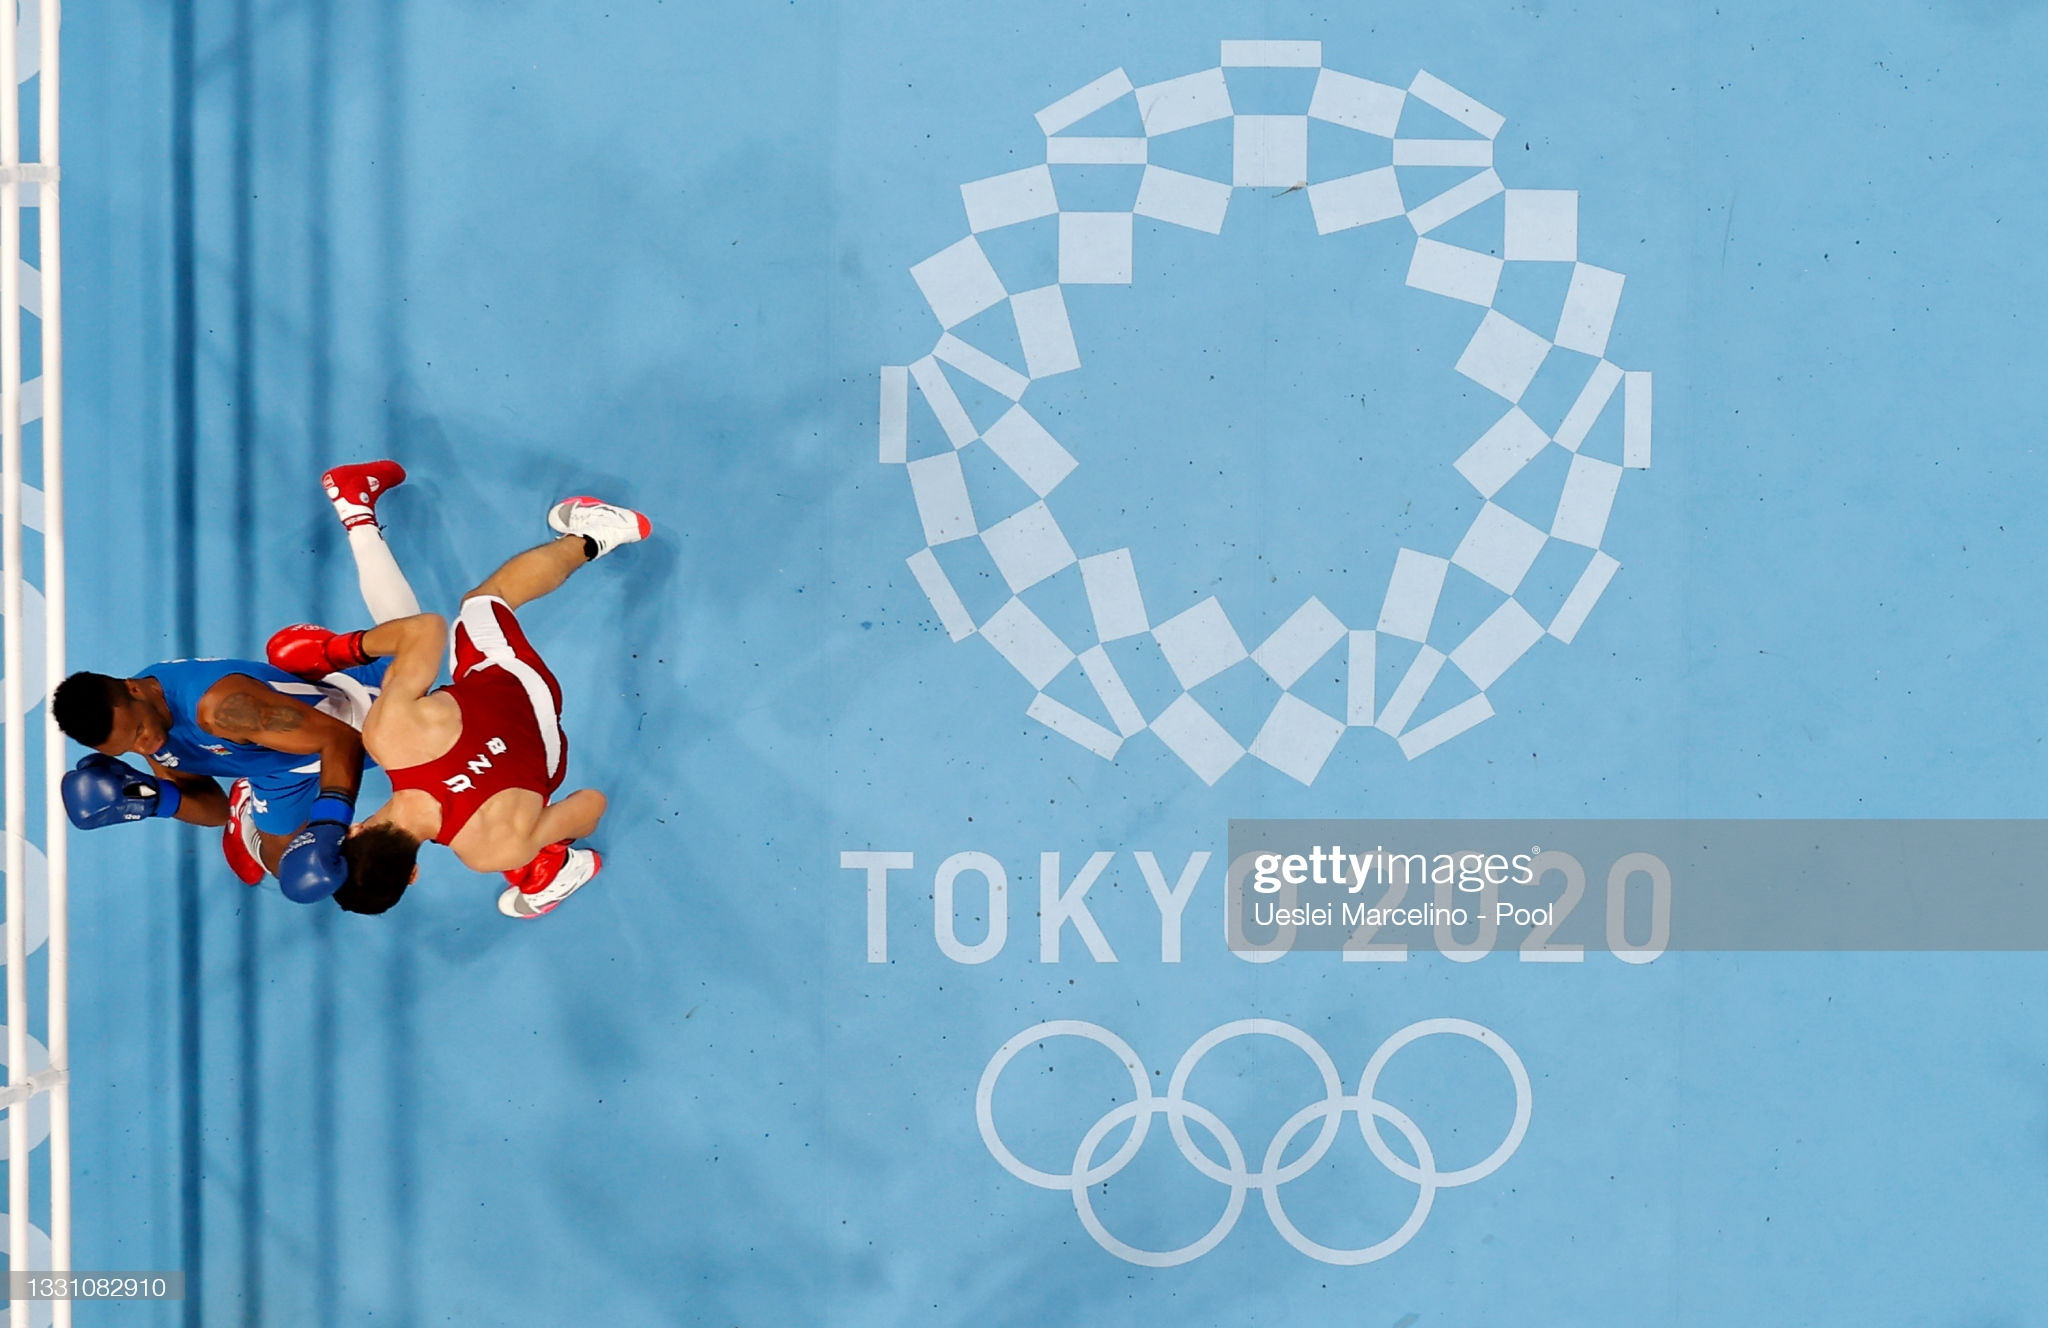 gettyimages-1331082910-2048x2048